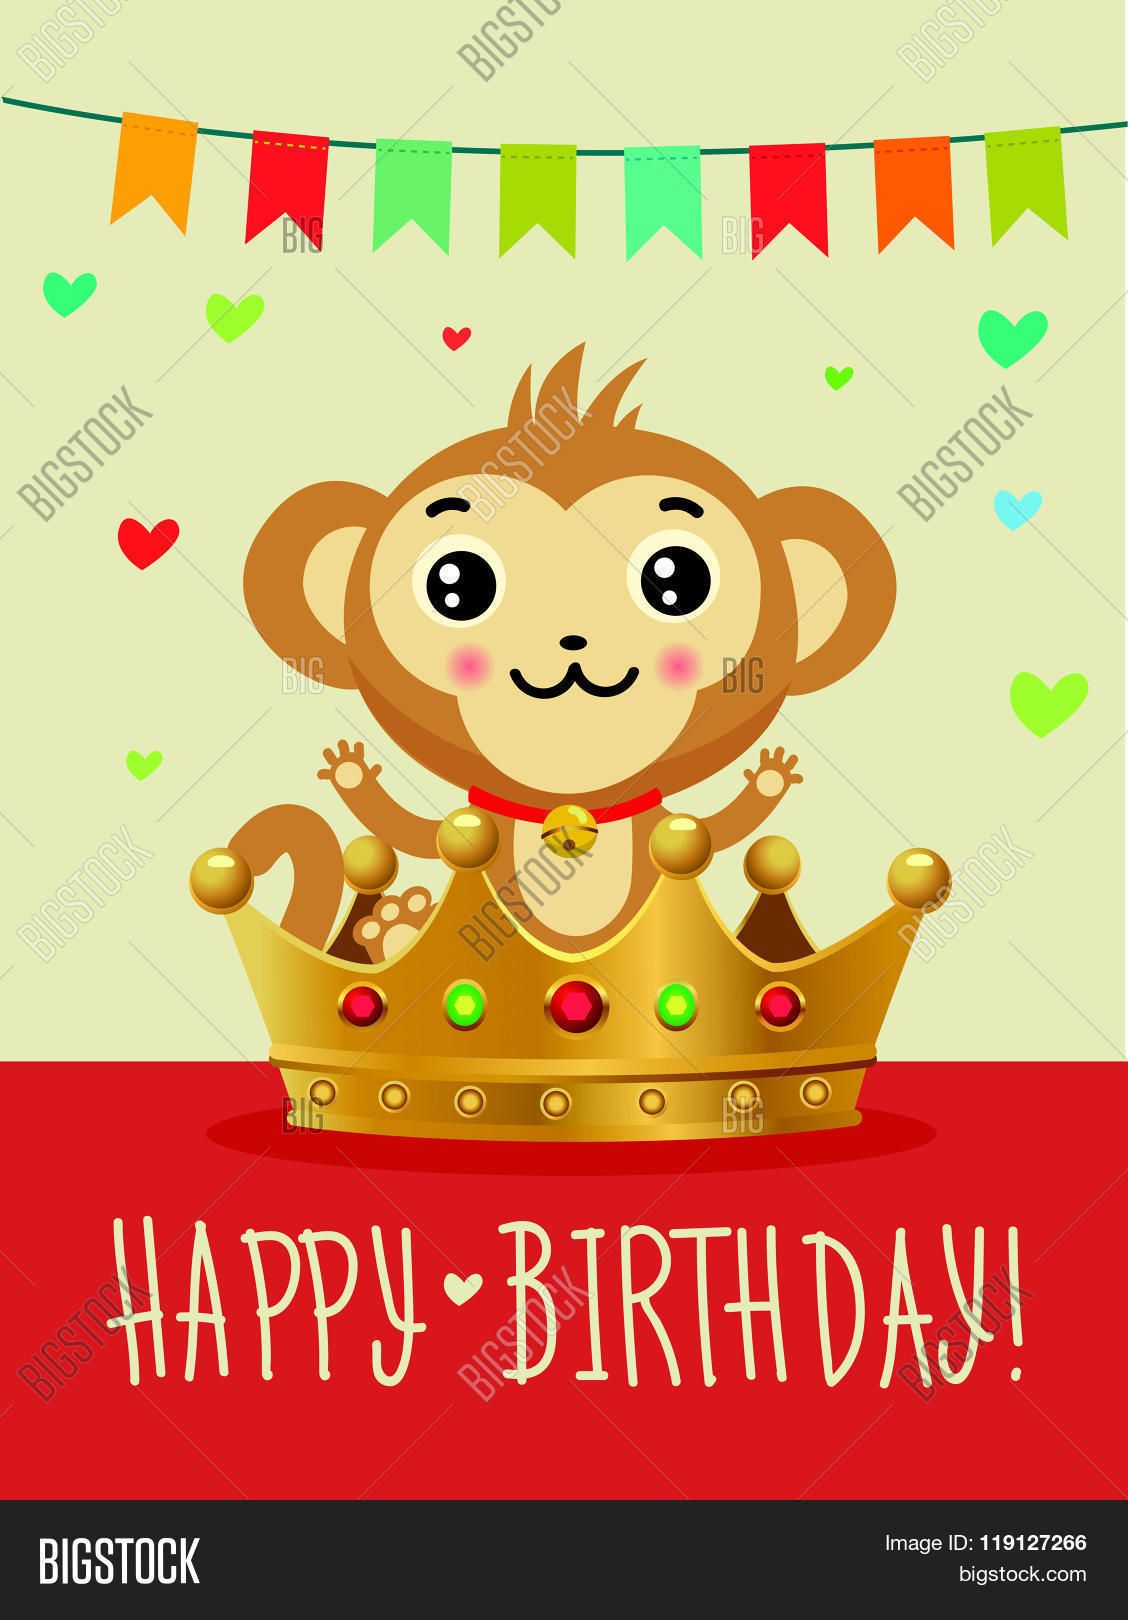 birthday images for best friend free download ; 119127266